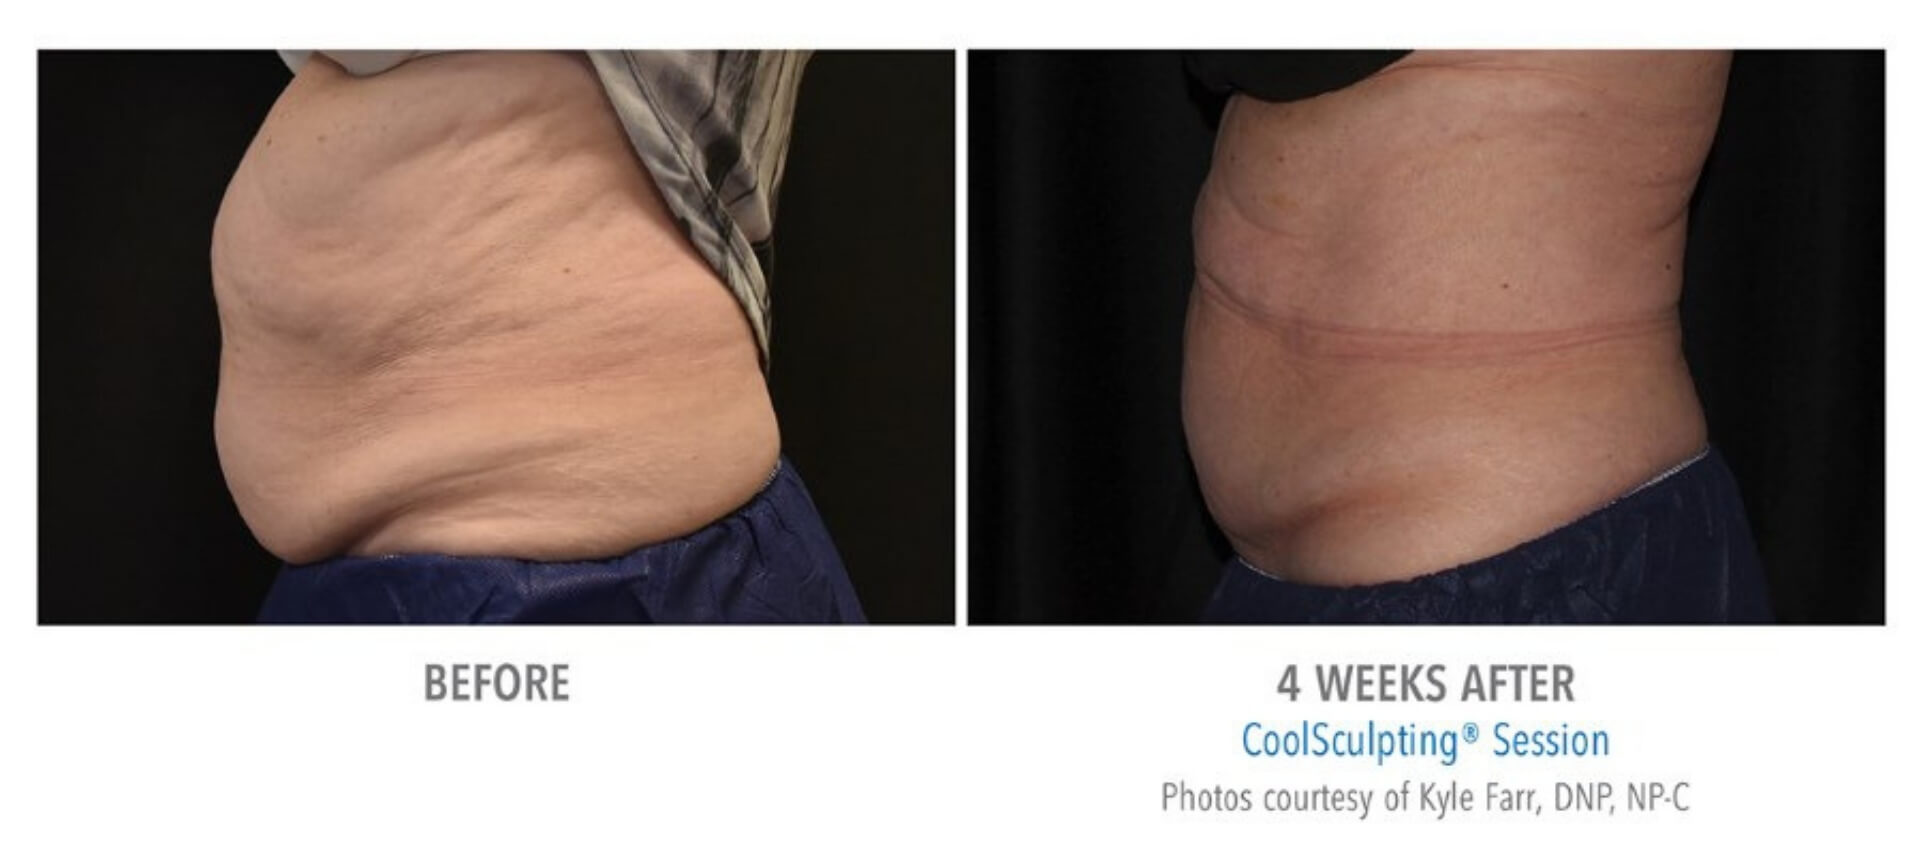 coolsculpting-before-and-after-photos-6.jpg